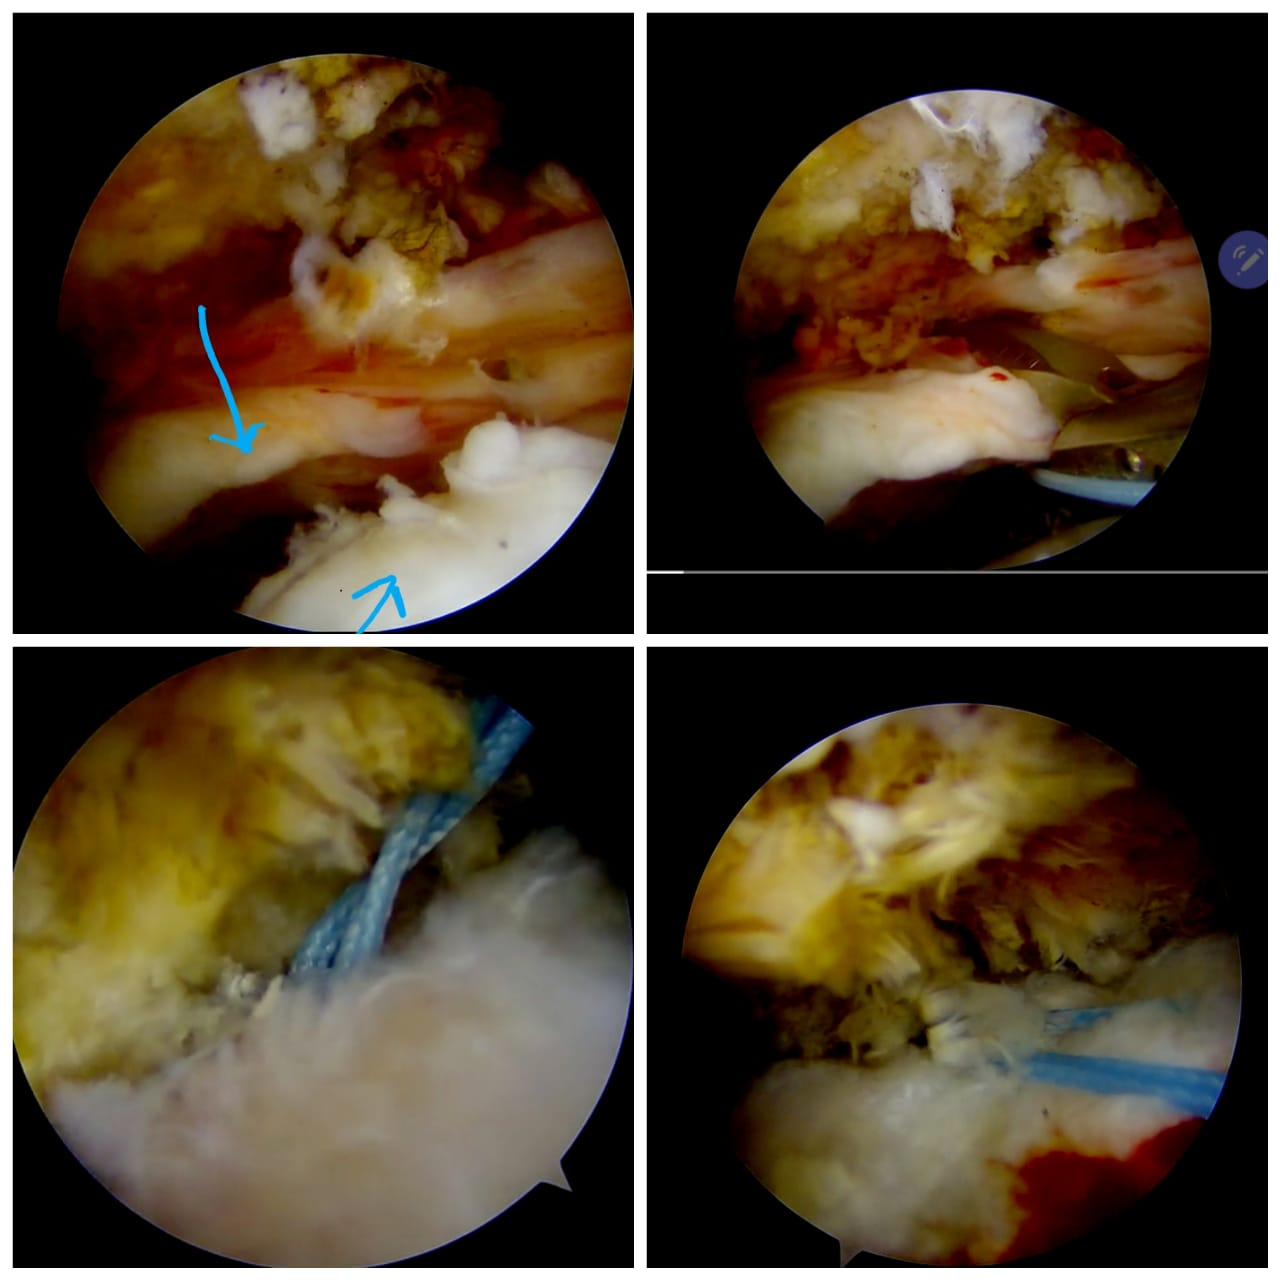 Repairing Shoulder Tear of a 65-years-old Patient During COVID-19